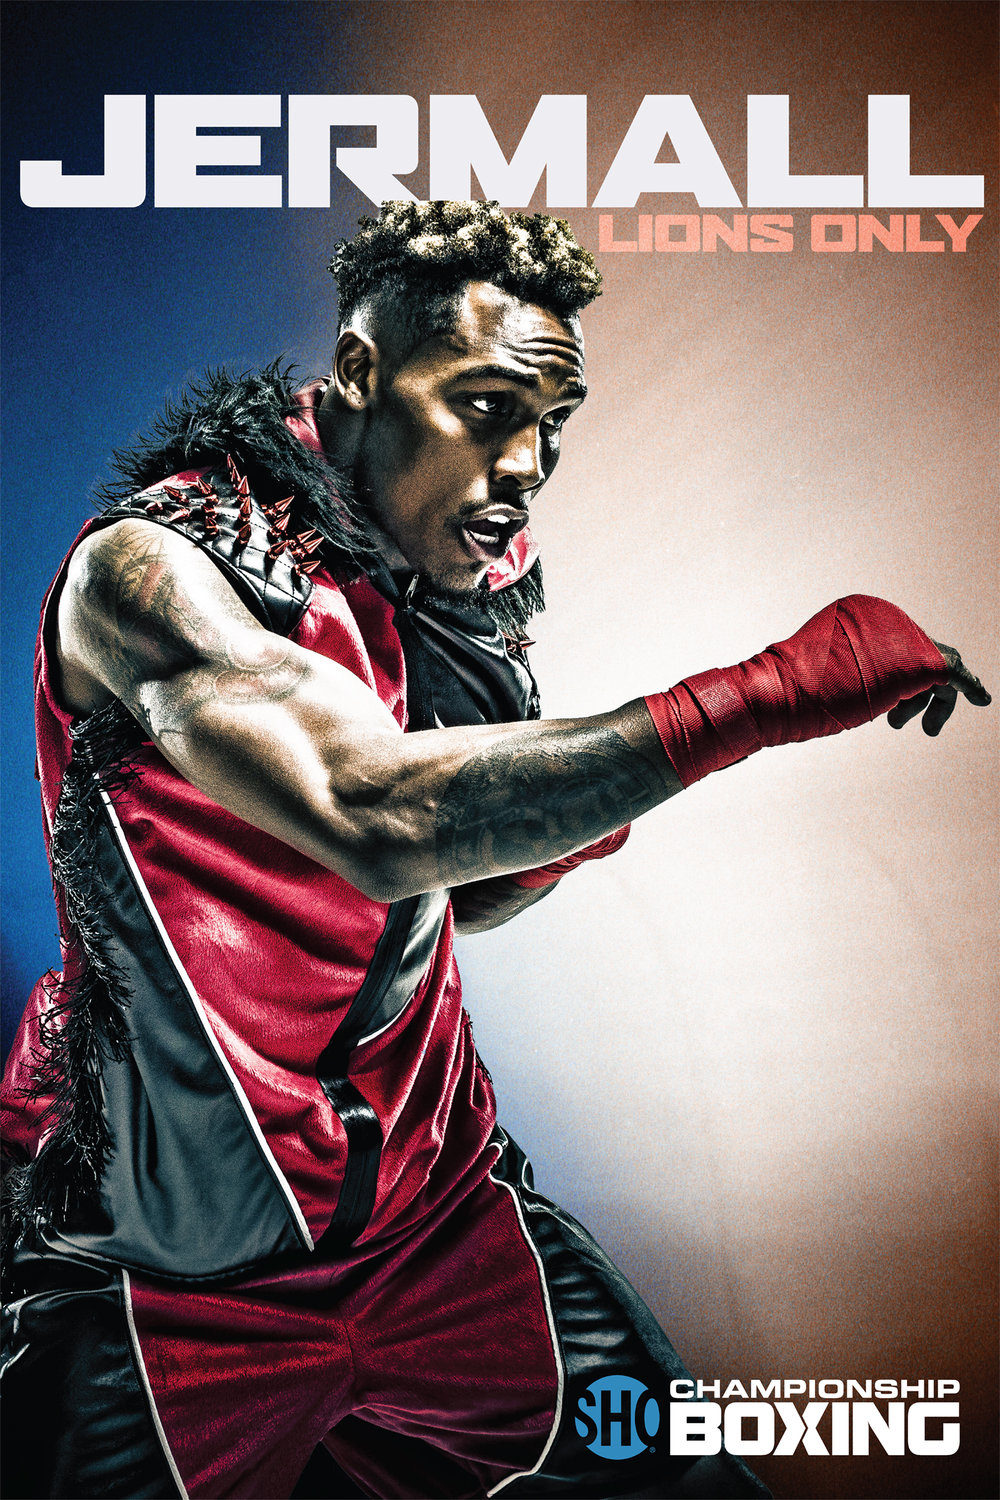 Jermall Charlo Banner 2 (dragged) 3.jpg